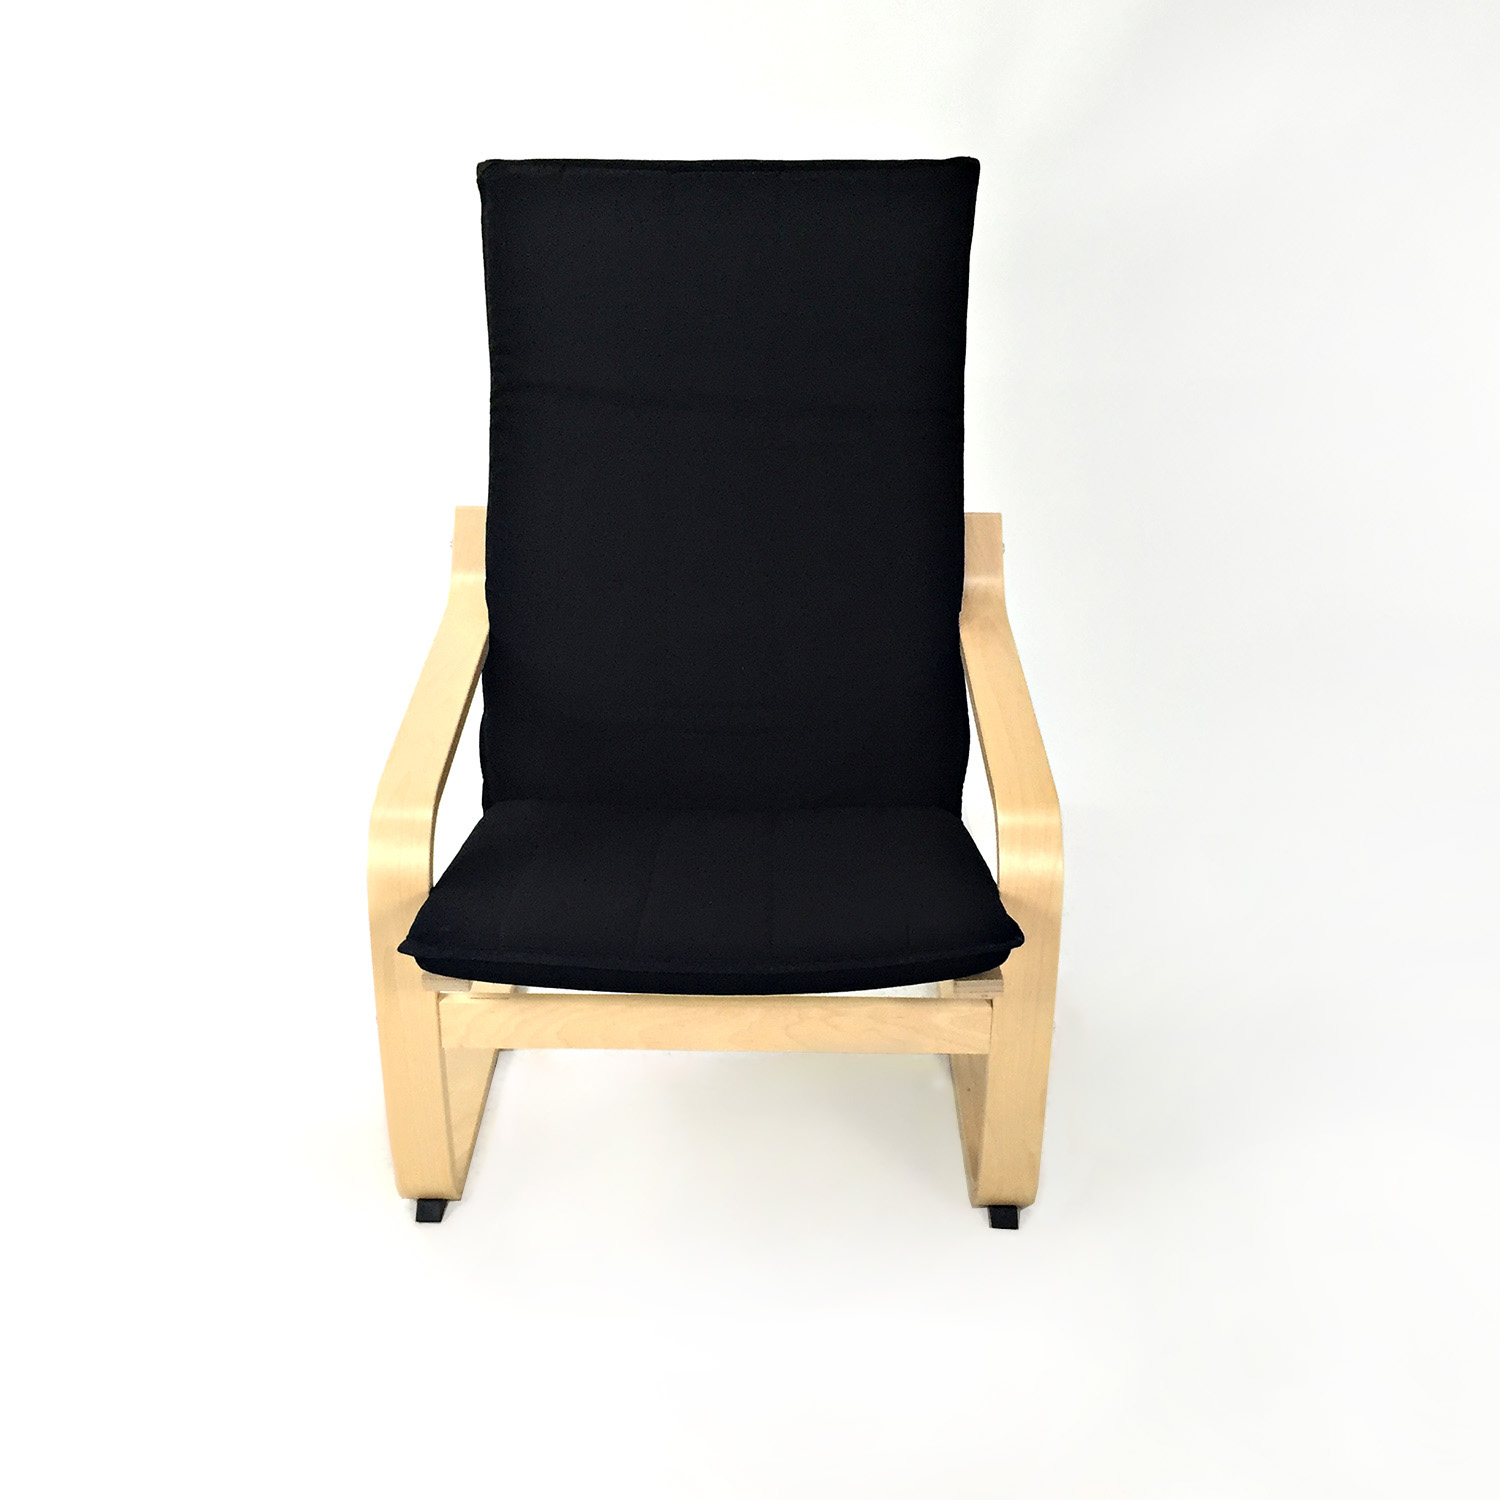 New Black Accent Chair Minimalist